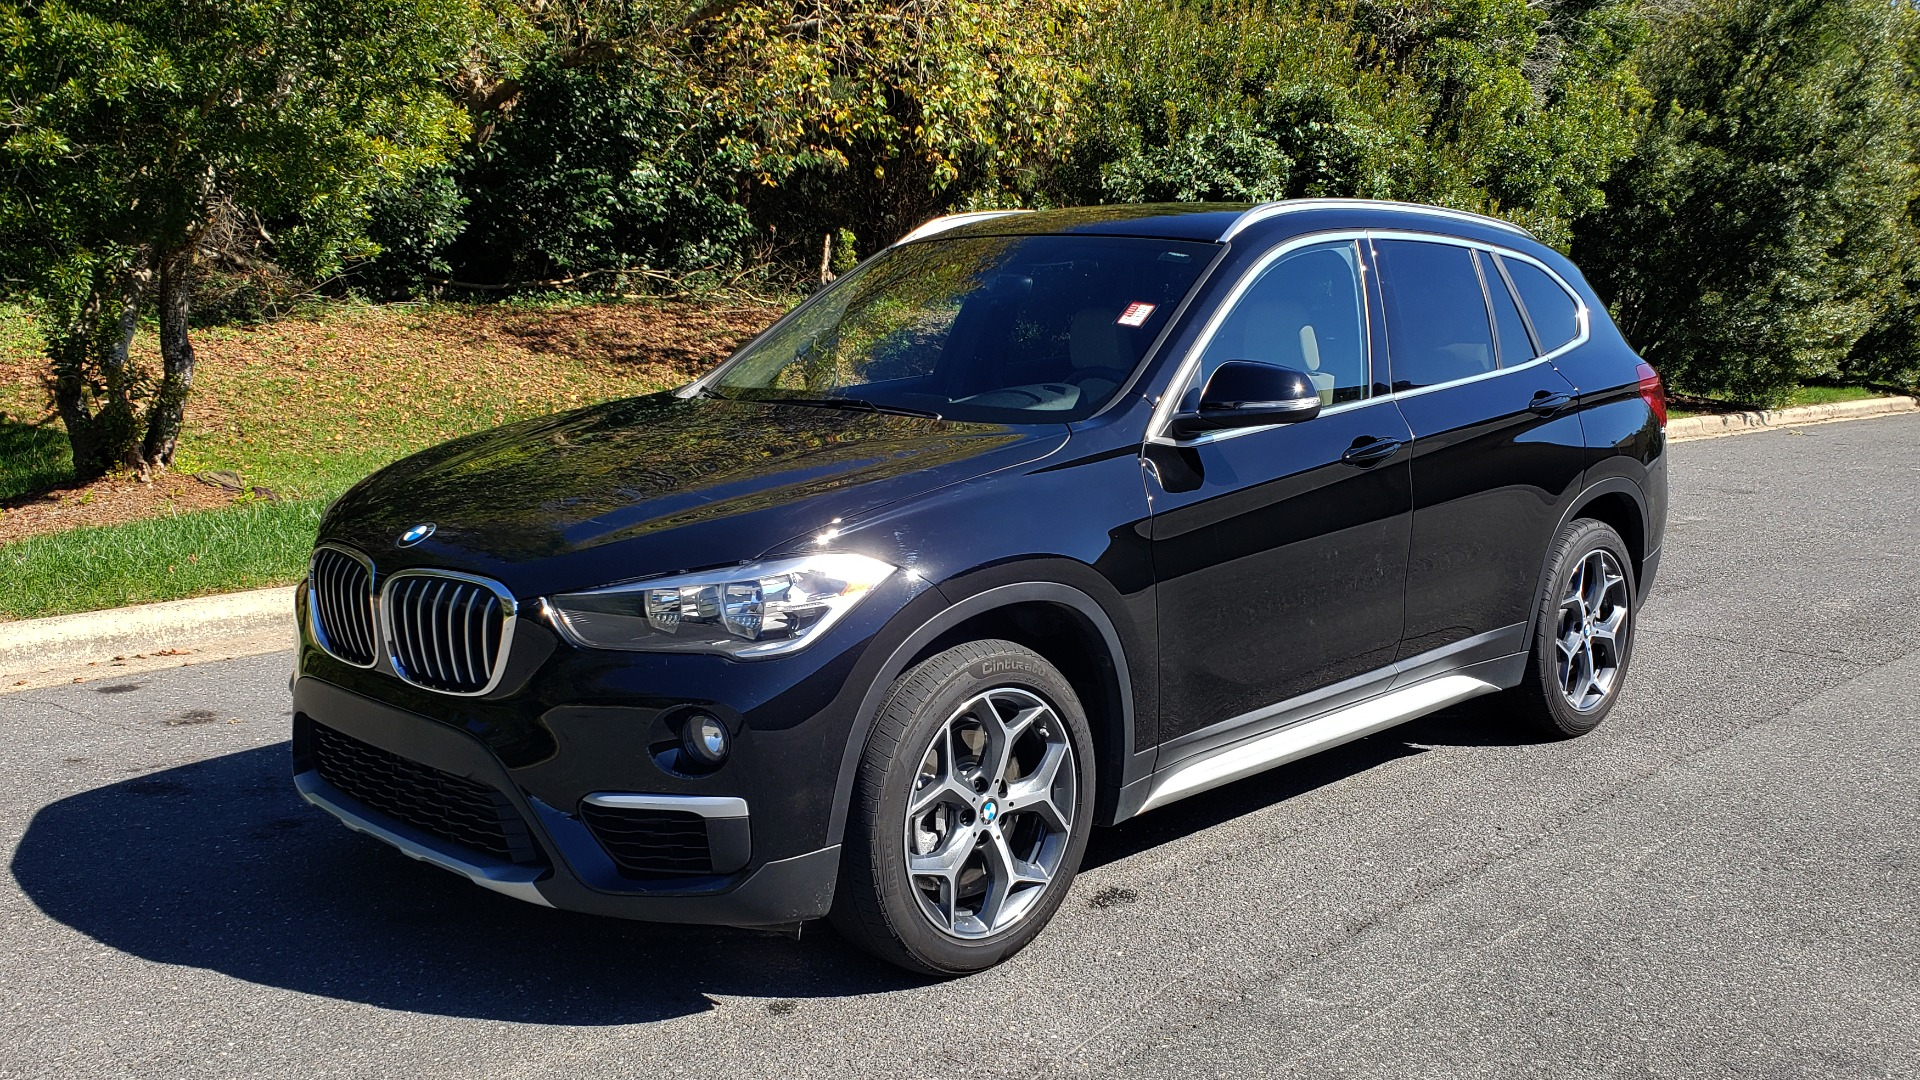 Used 2018 BMW X1 SDRIVE28I / HEATED SEATS / 4-CYL / 8-SPD AUTO / REARVIEW for sale Sold at Formula Imports in Charlotte NC 28227 6